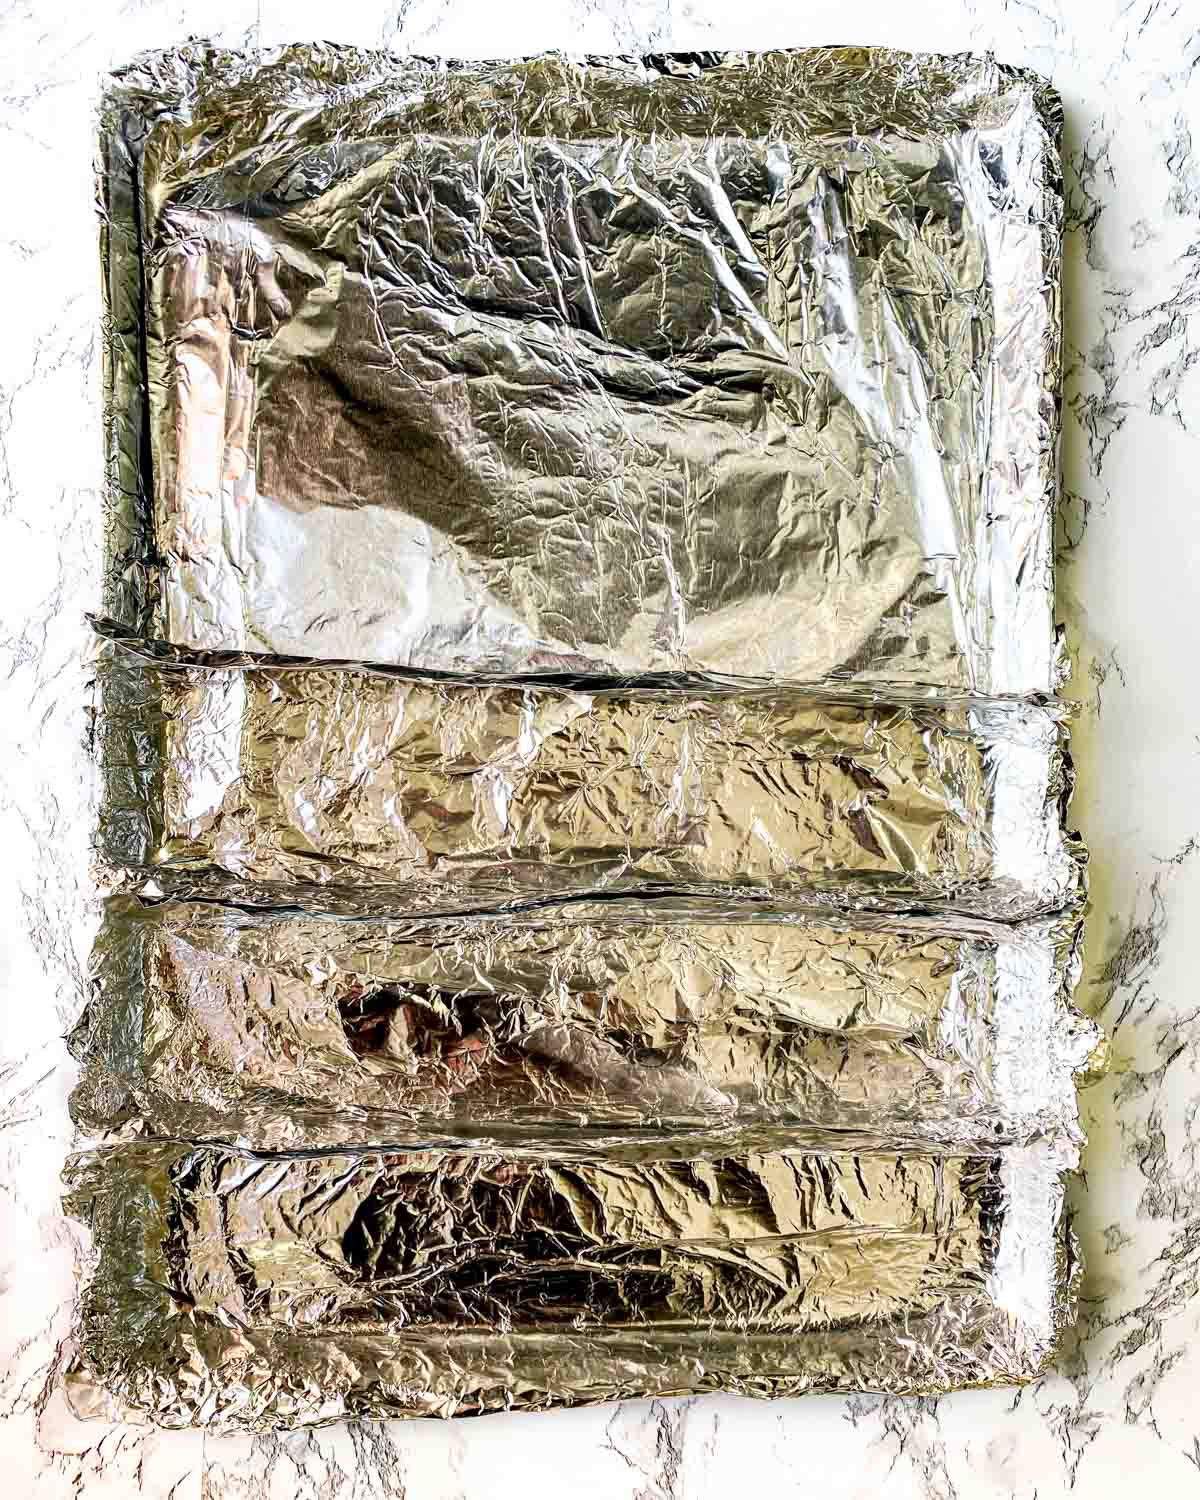 Sheetpan covered in foil, with additional foil sheets creating 4 total compartments.